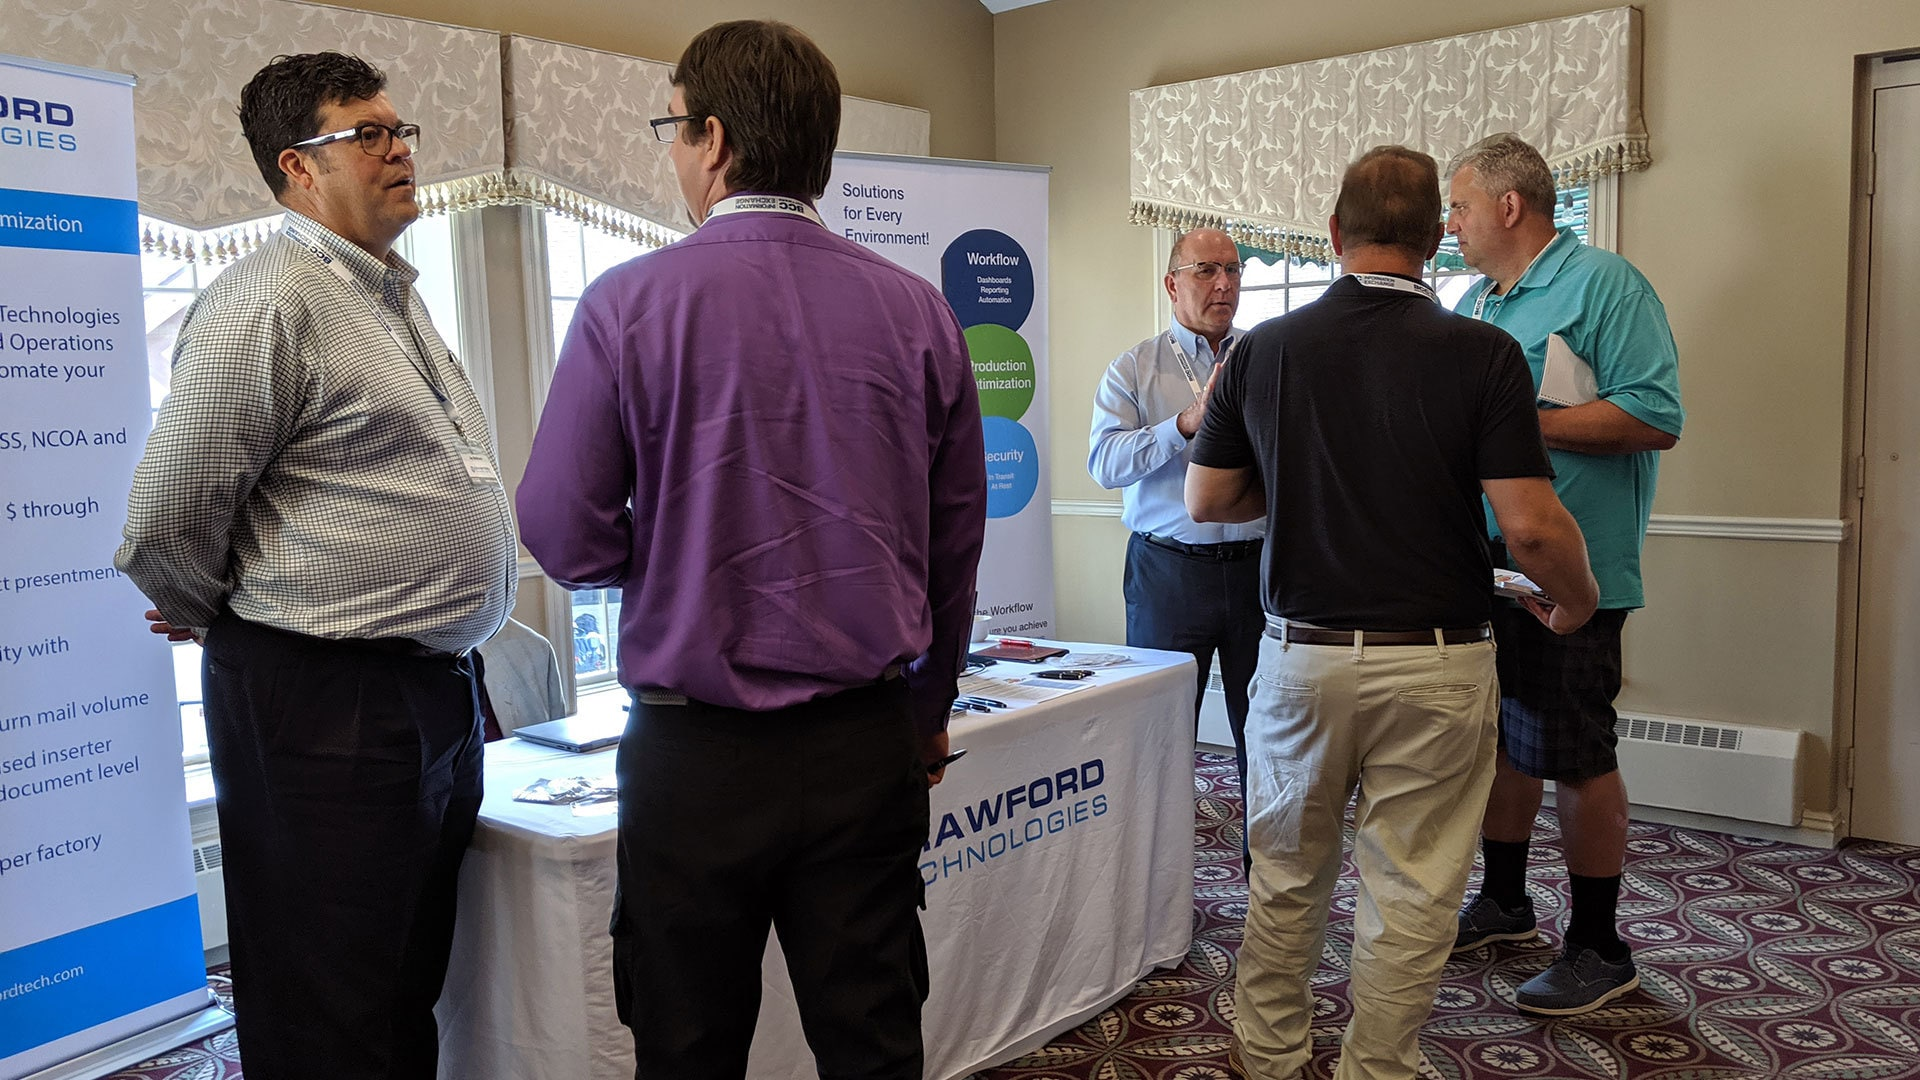 Attendees and Sponsor Crawford Technologies in the IE Meeting Zone